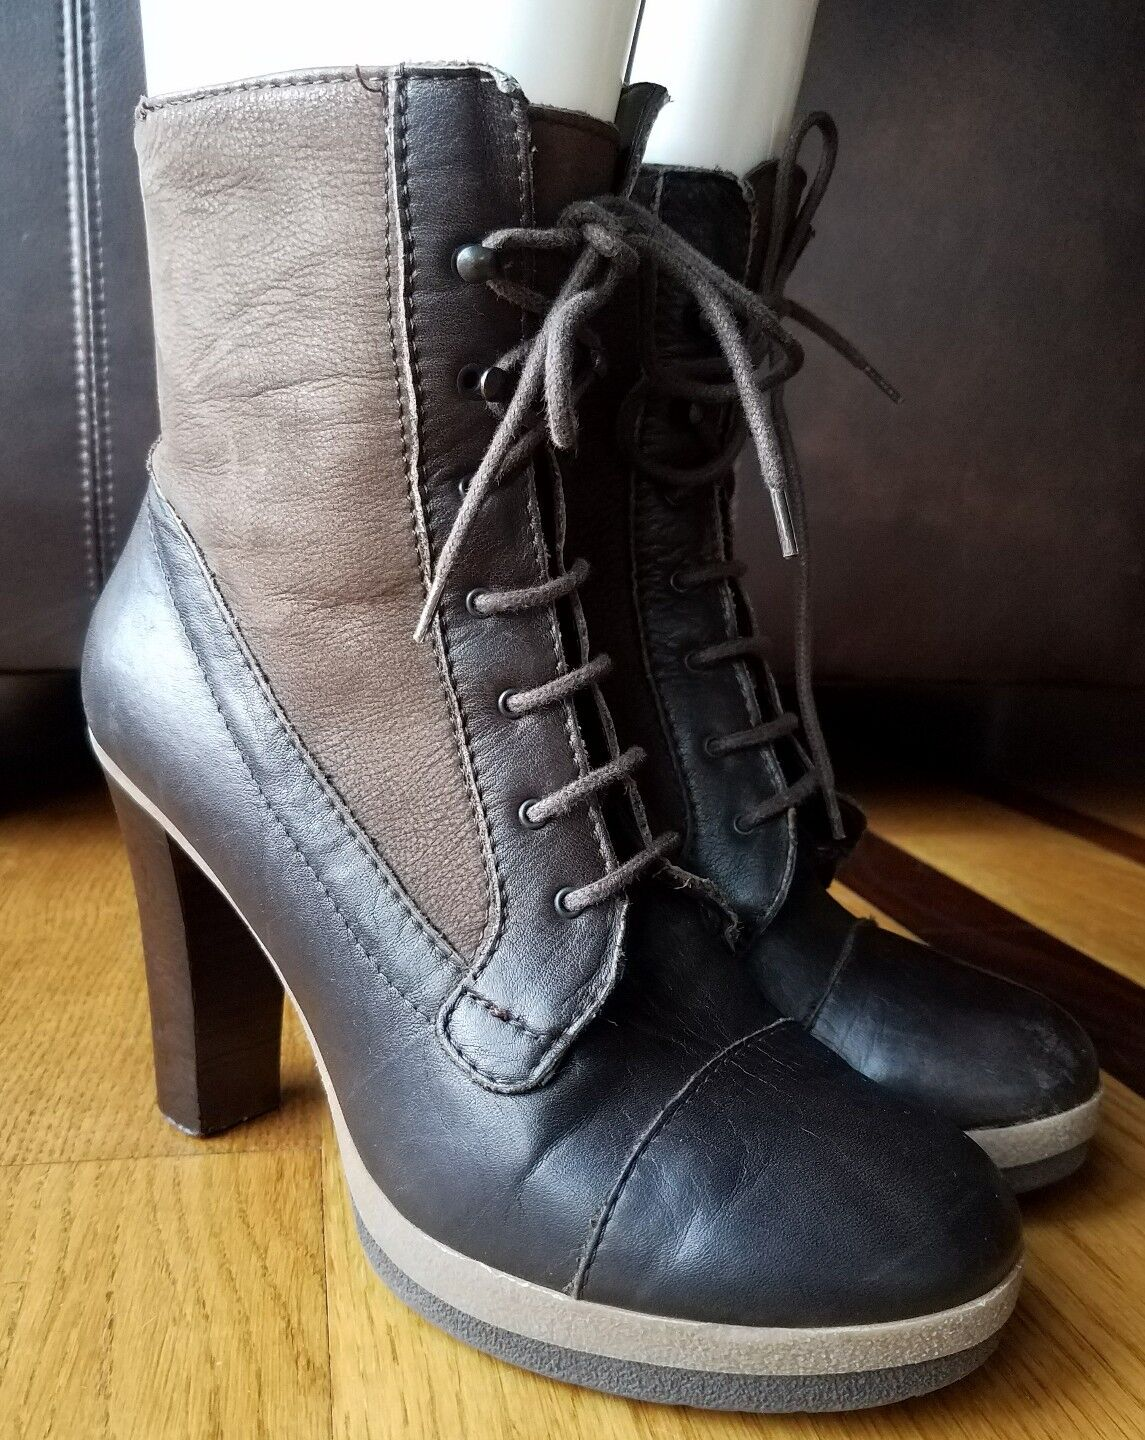 PENNYBLACK Womans Heeled Boots Brown Leather Lace Up/Side Zip Combat Sz 39 Italy